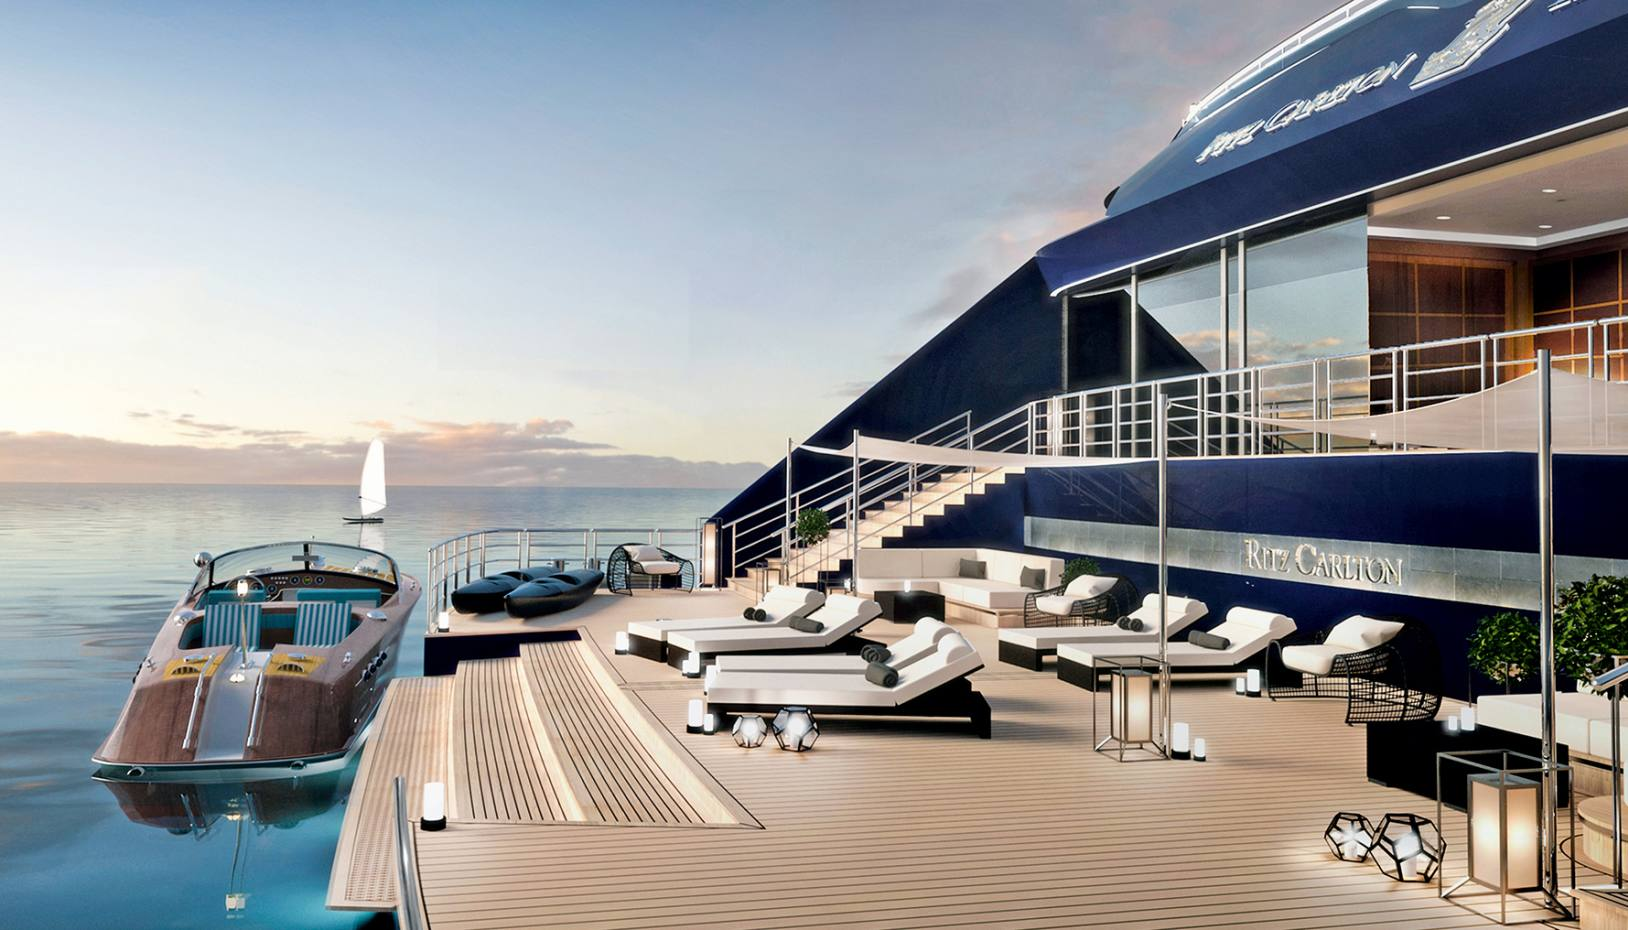 The first of The Ritz-Carlton Yacht Collection's cruisers will have a champagne lounge and a theatre